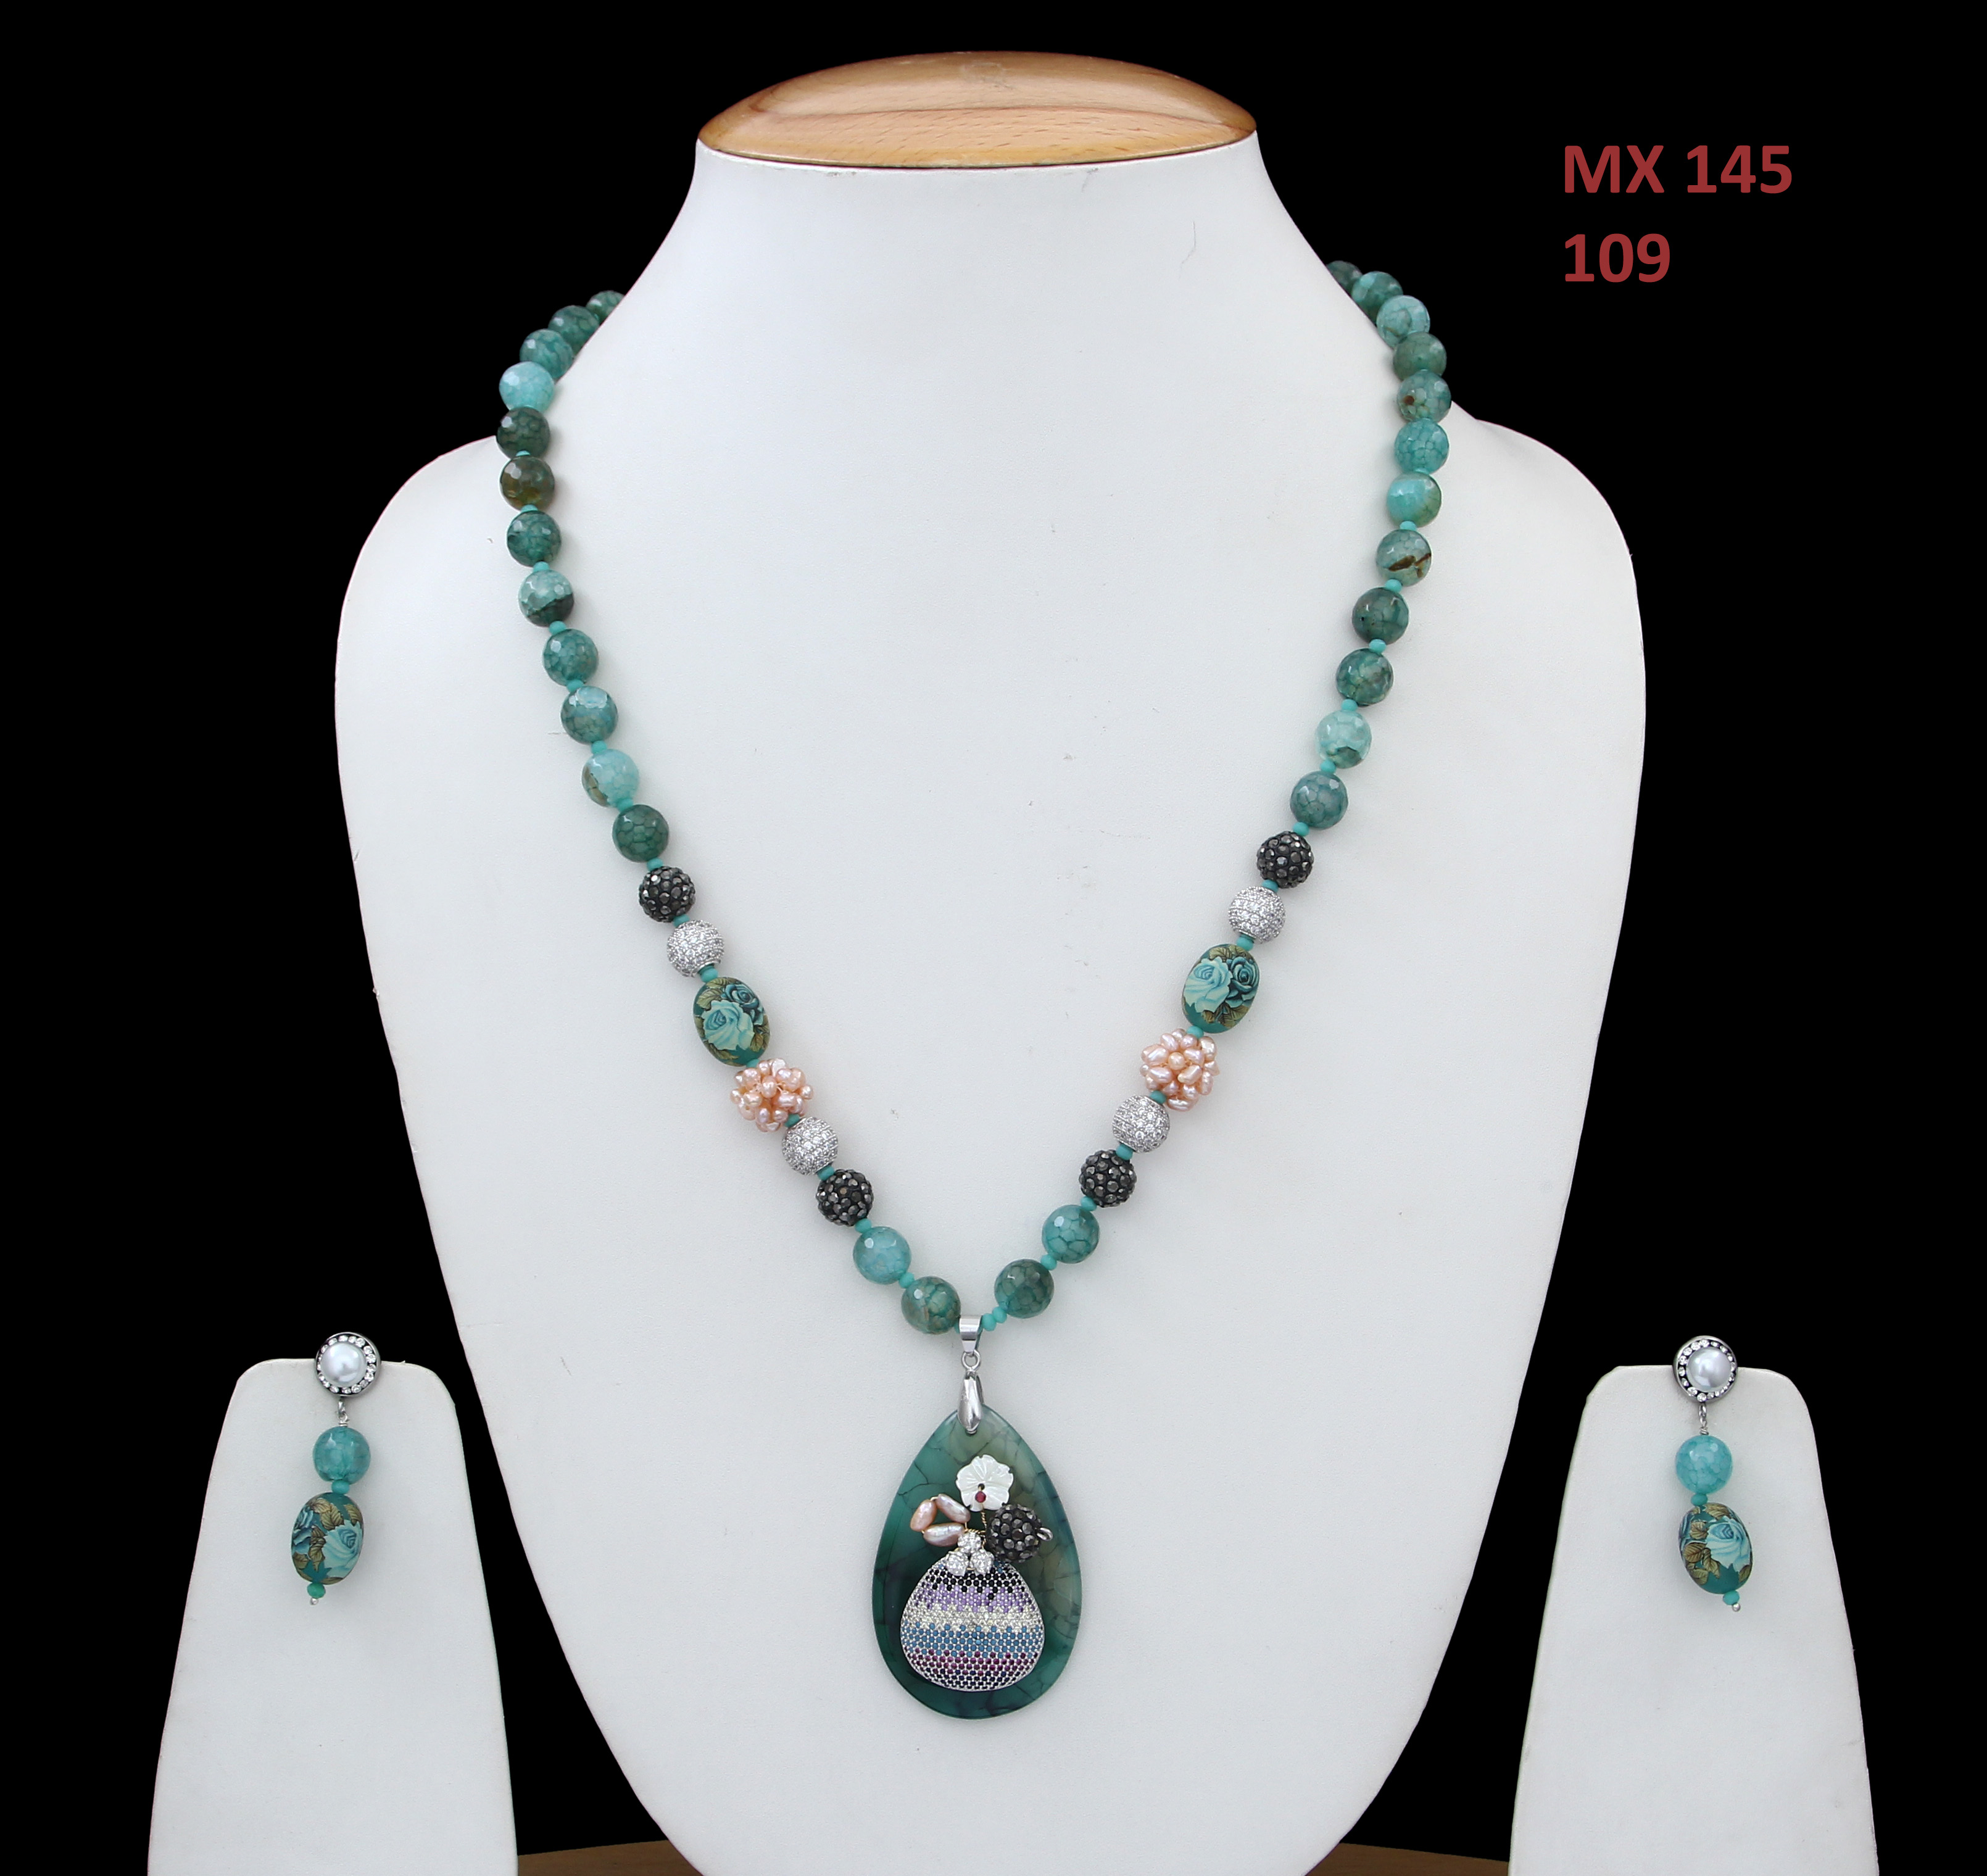 55Carat | 55Carat Latest Design Beads Made Single Strand Chain Necklace Pendant with Drop Earrings Set Sea Green Jasper Haar Chain Mala Jewellery Set for Mother, Sister and Wife